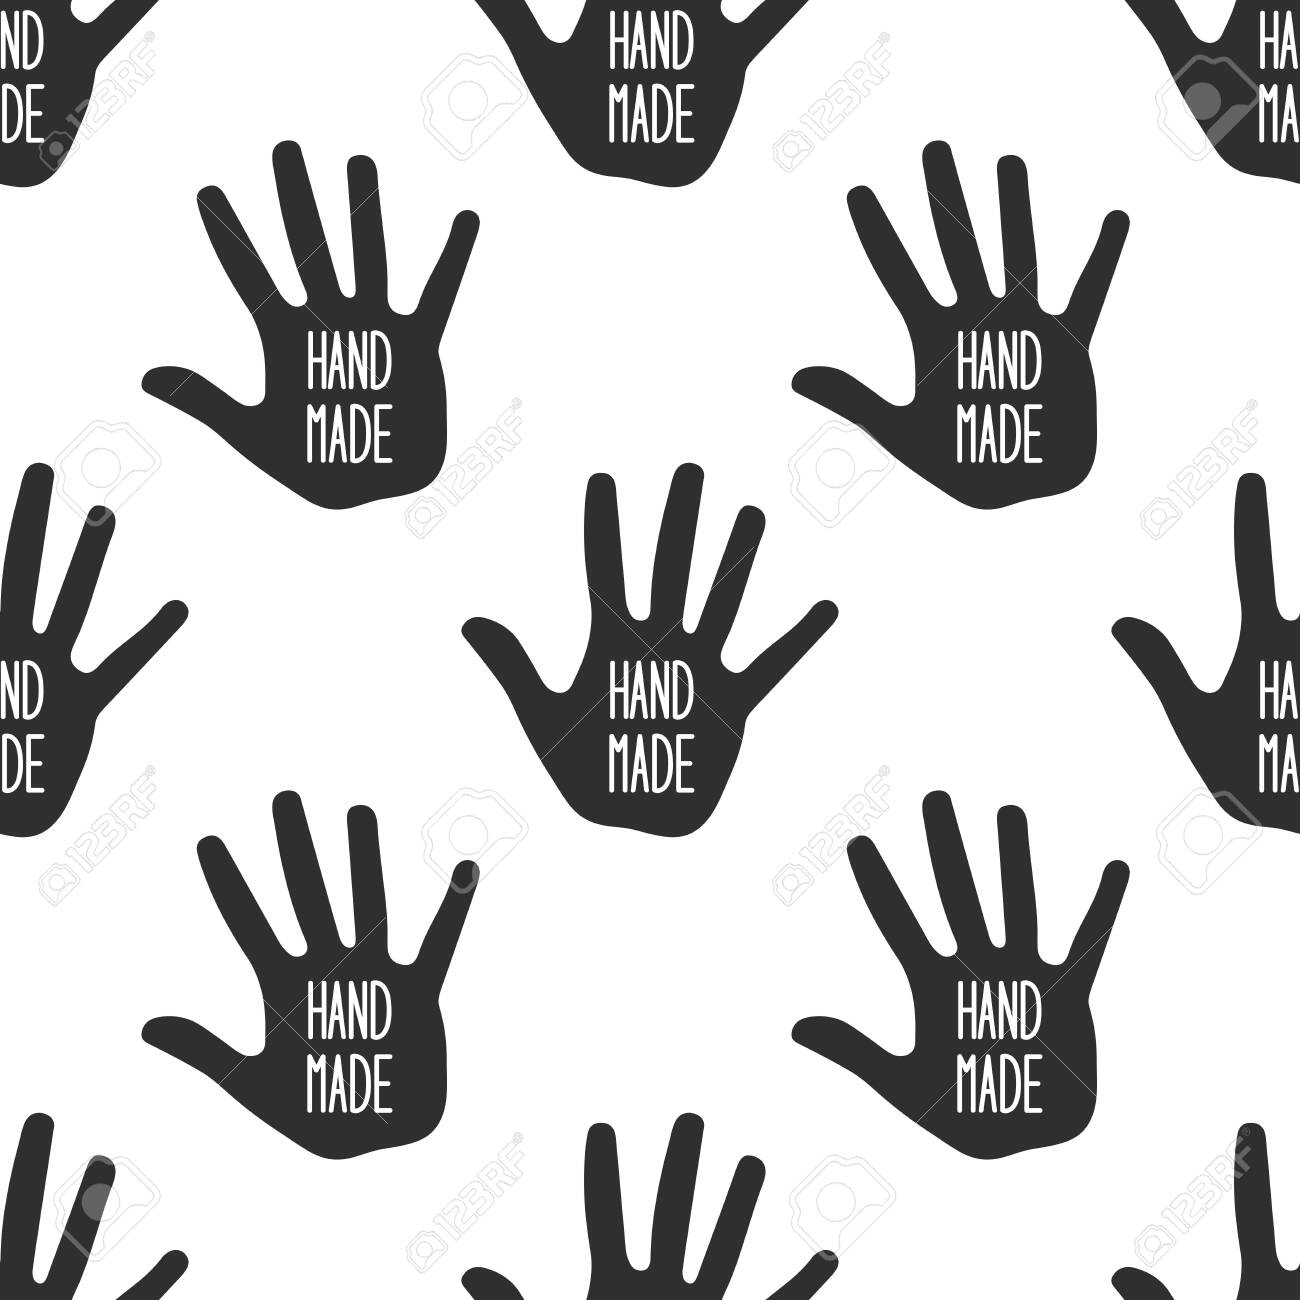 Hand made with hand silhouette on white - 141031911